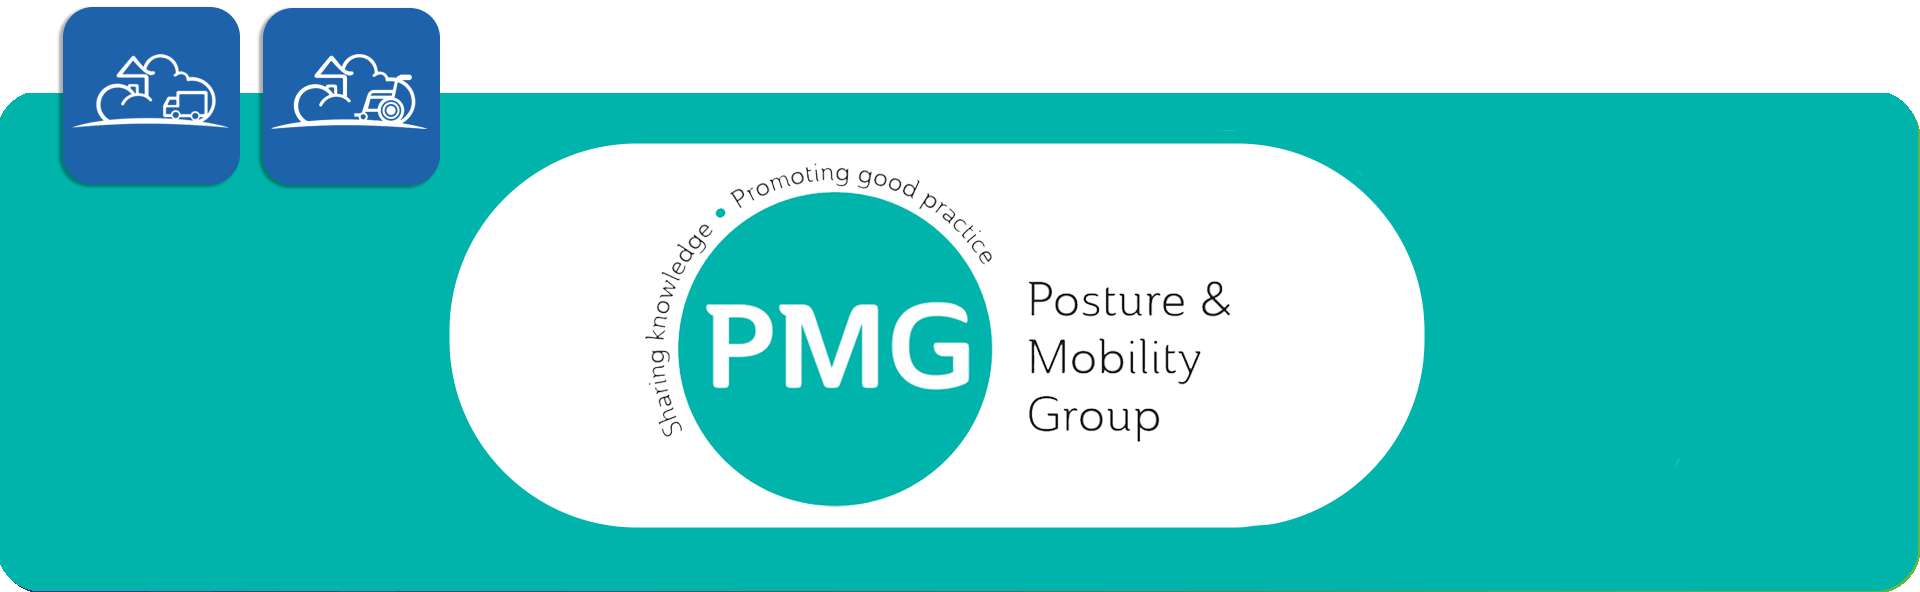 posture & mobility group logo